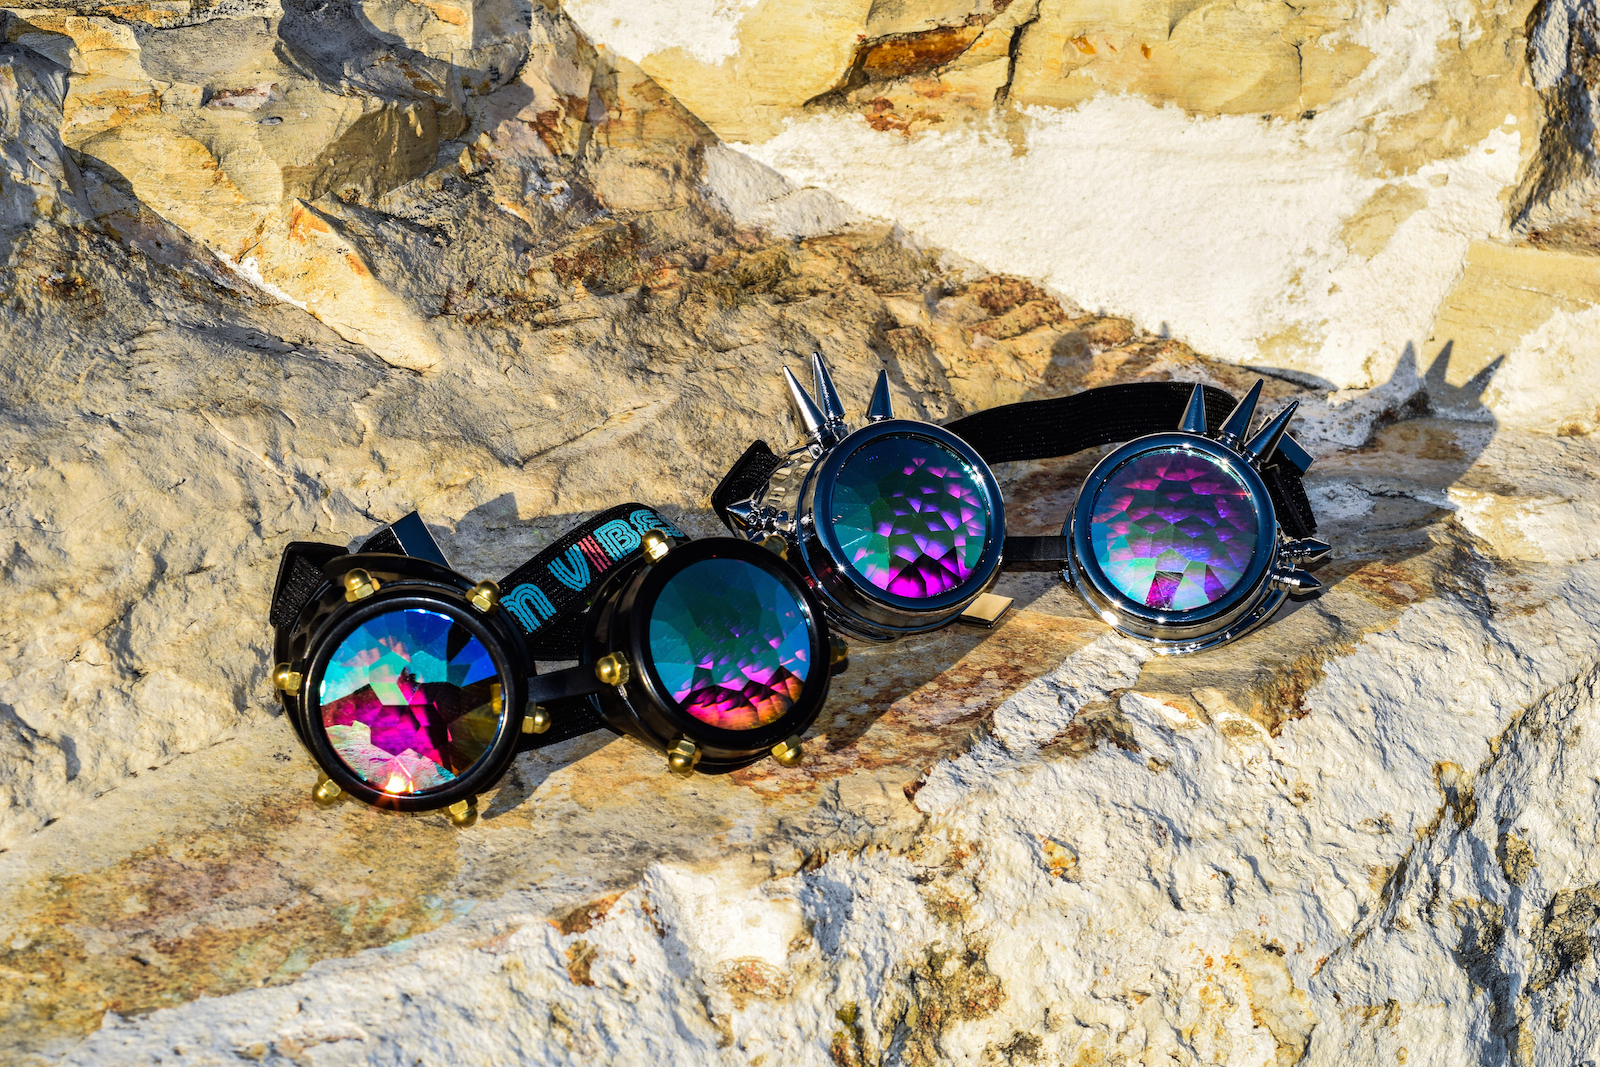 Goggles Balck Studded and Spiked Rock Internet Sized